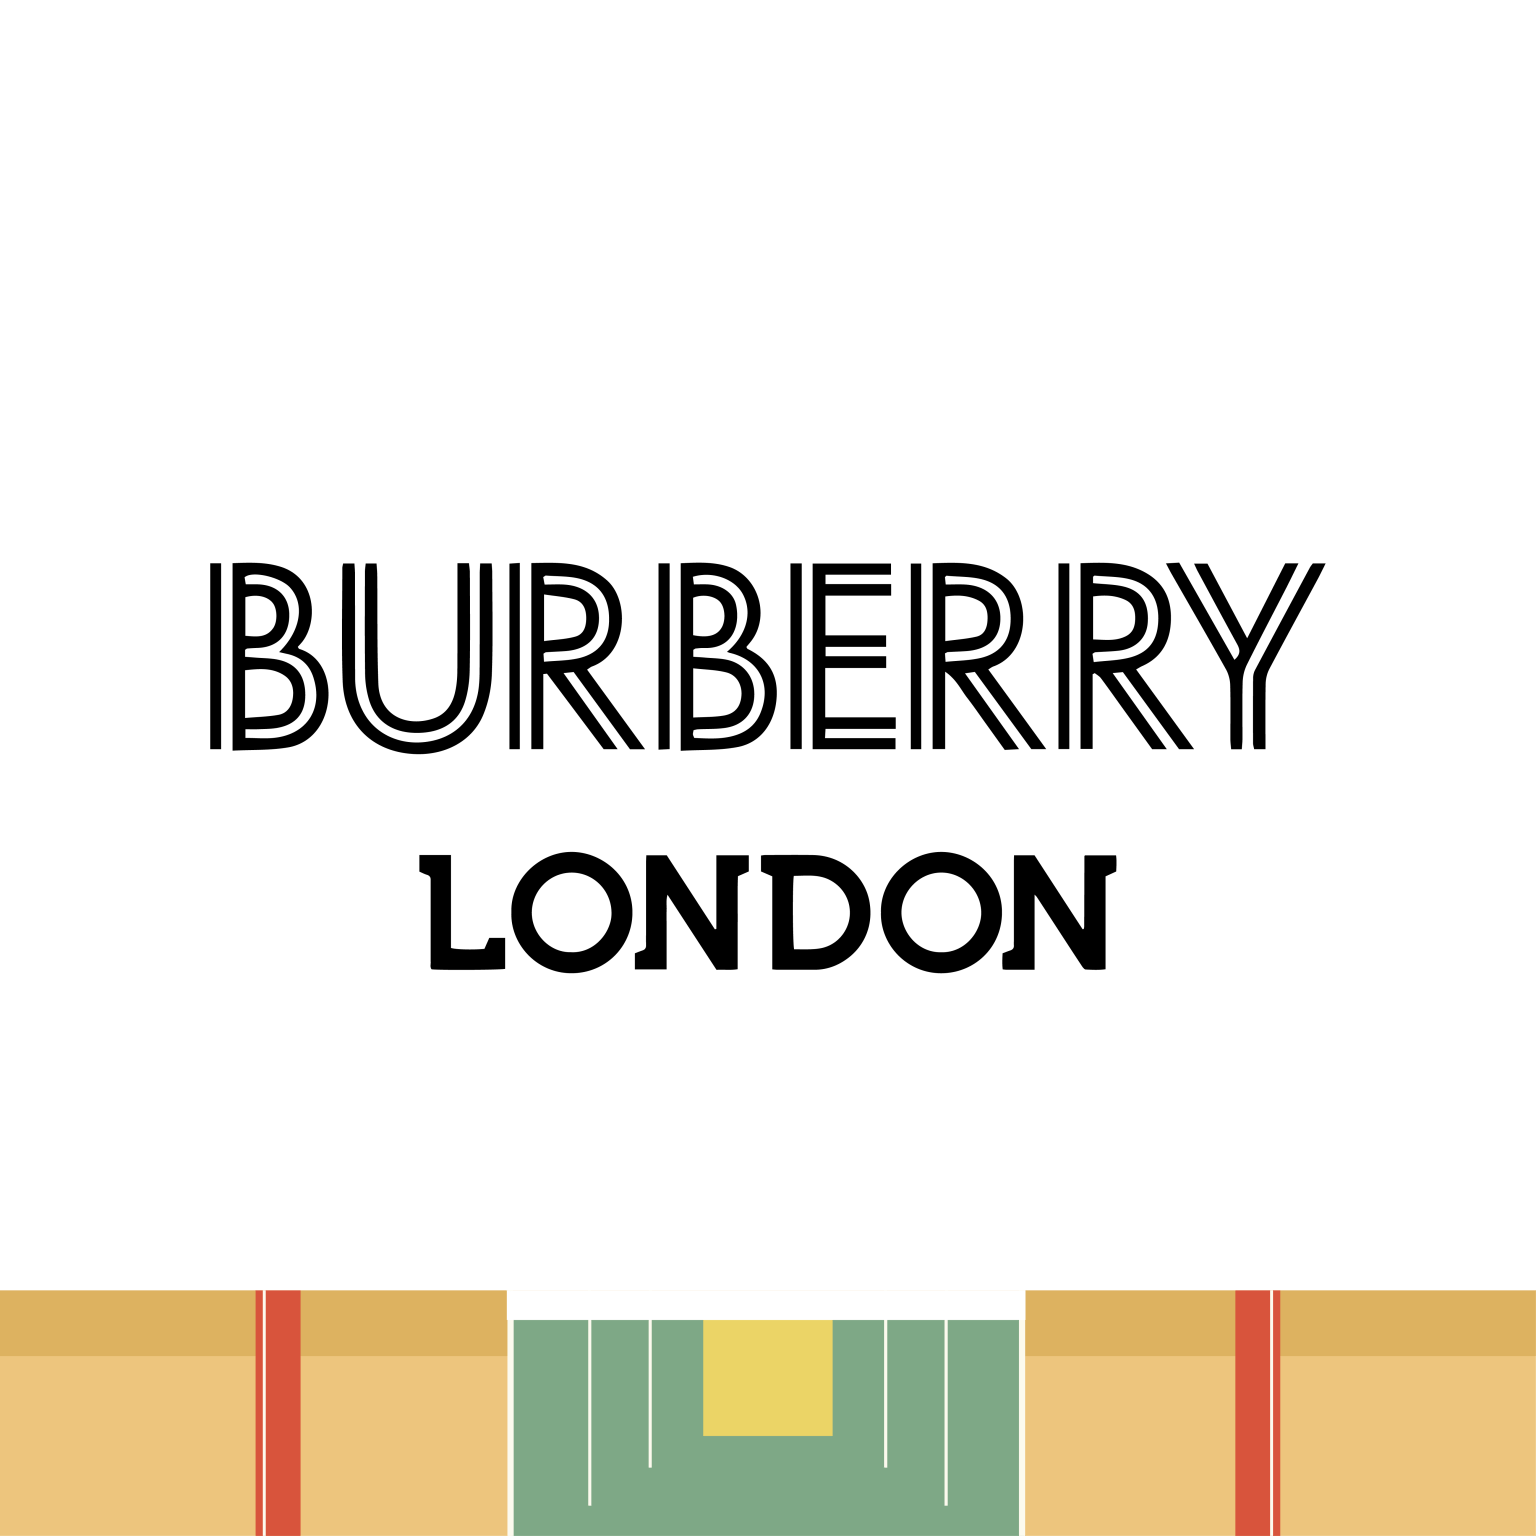 BURBERRY logo unofficial redesign